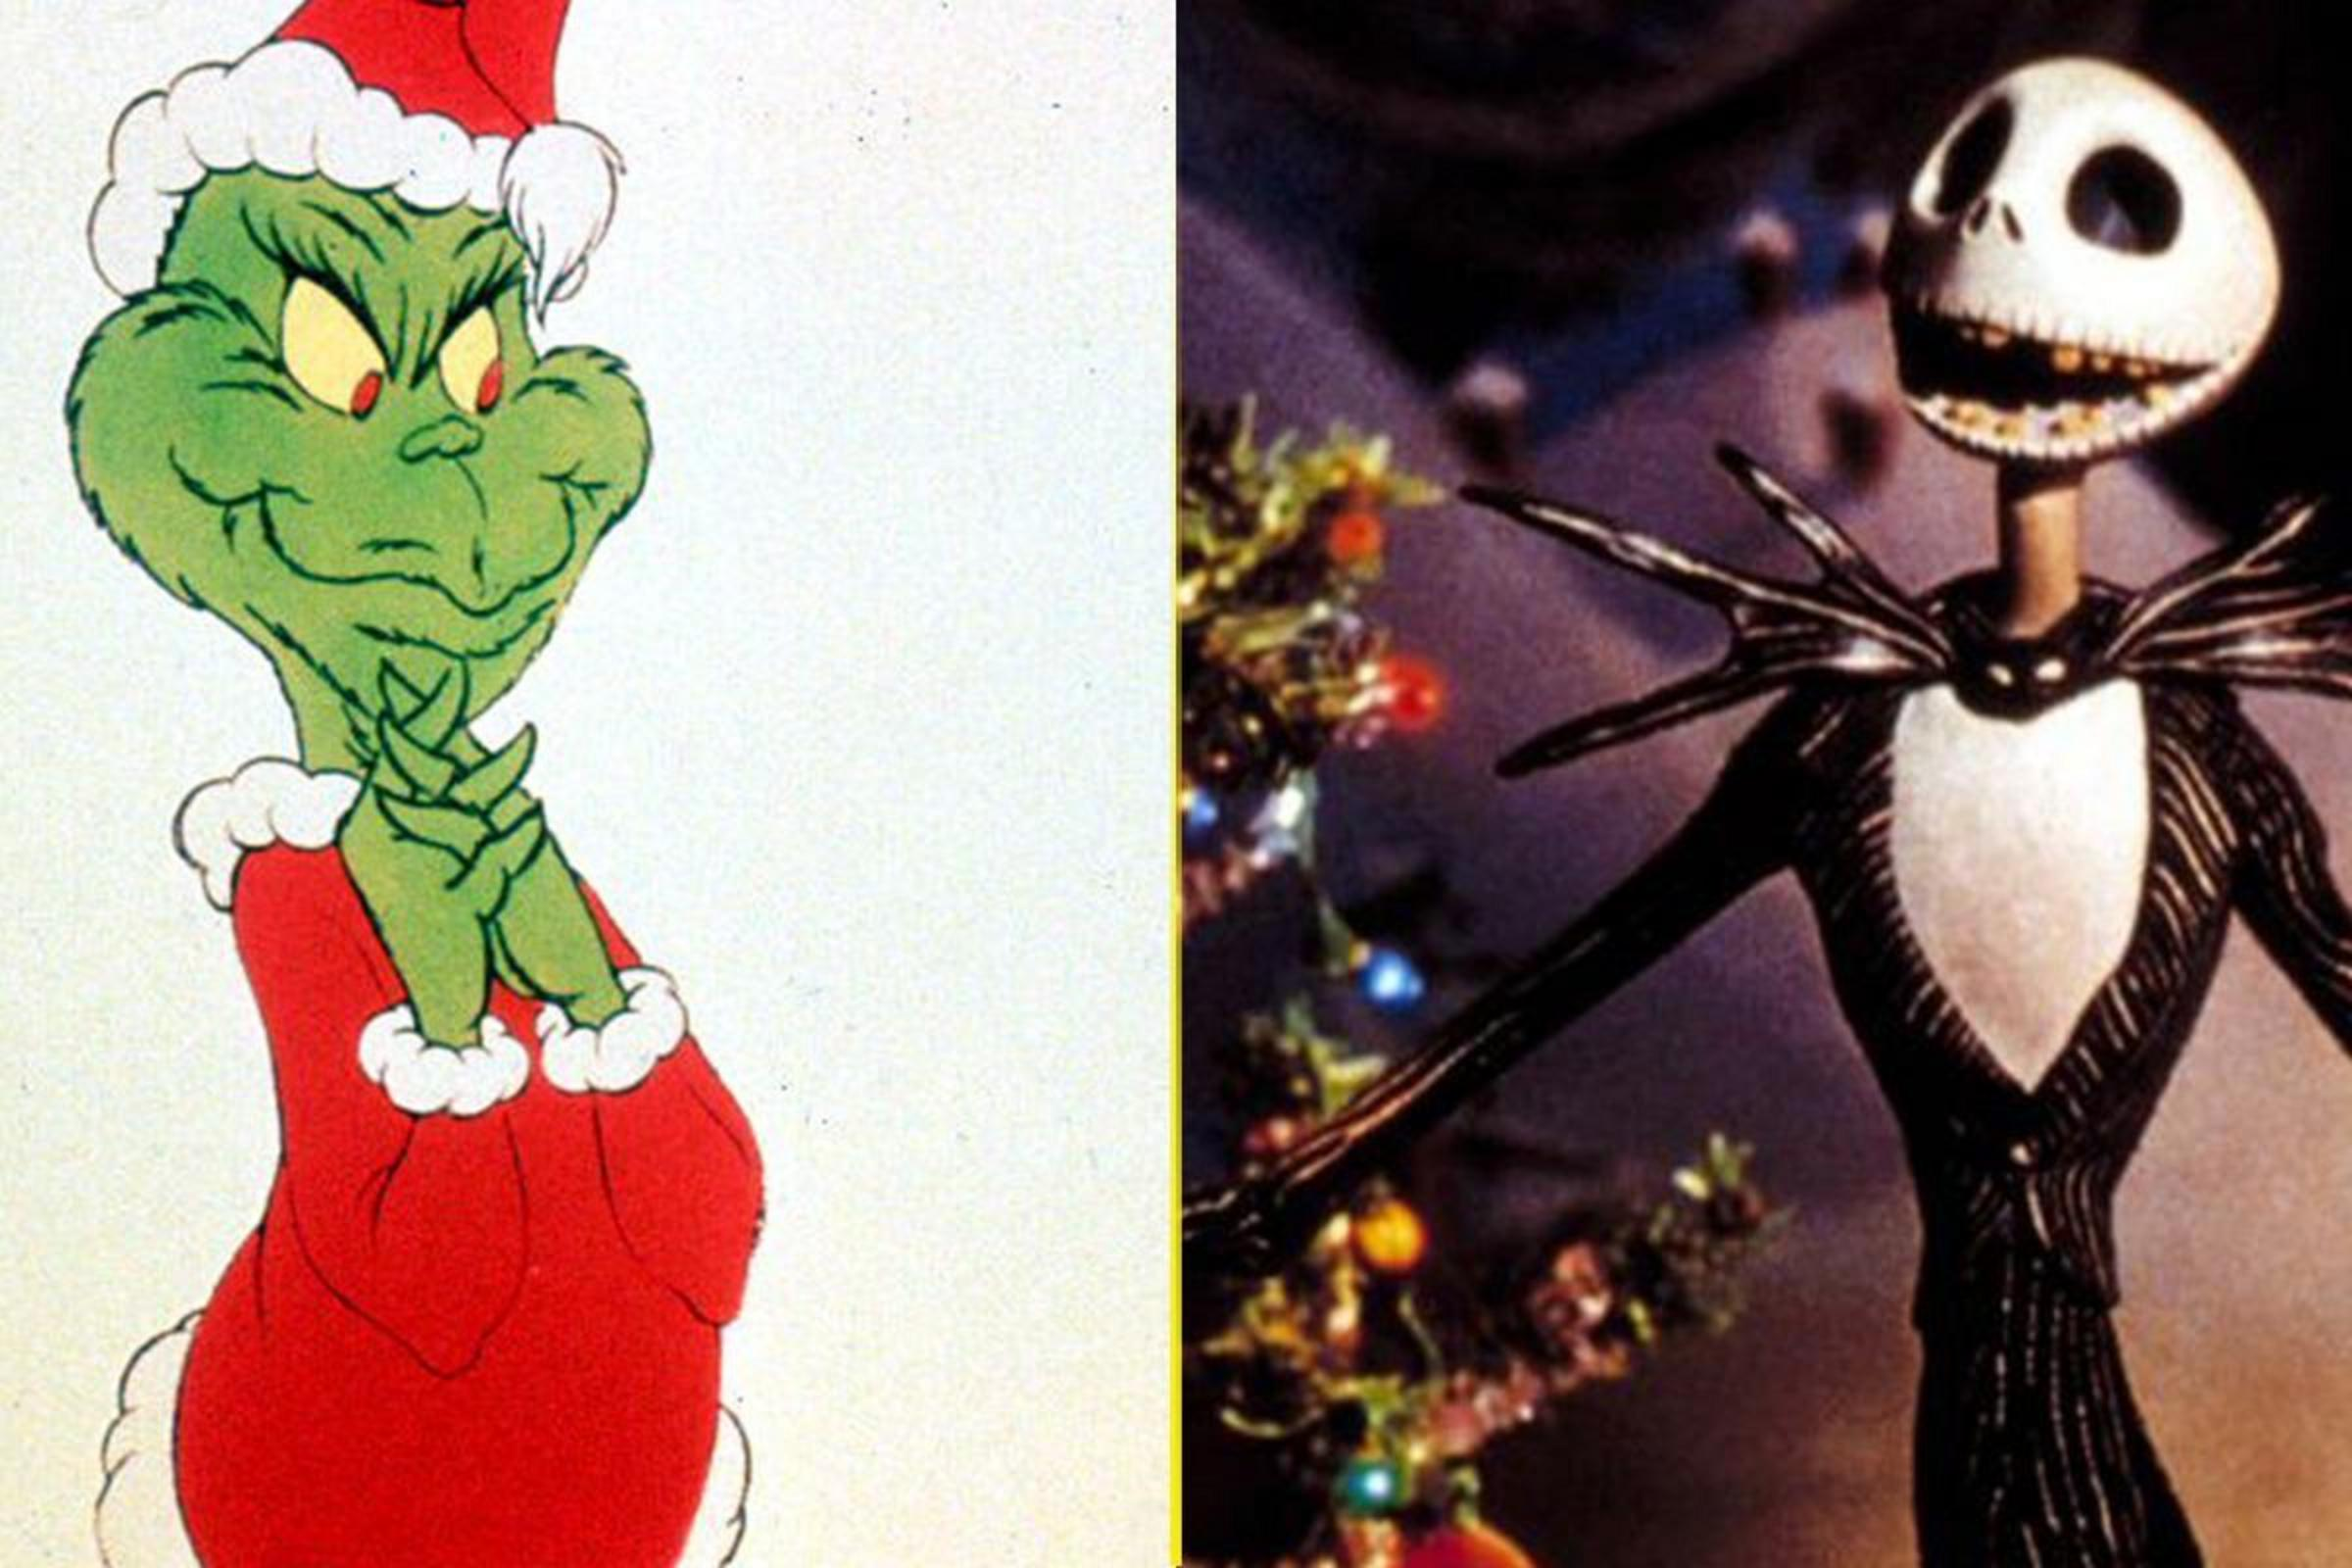 Favorite animated movie icon who 'stole' Christmas: The Grinch or Jack Skellington? | The Tylt